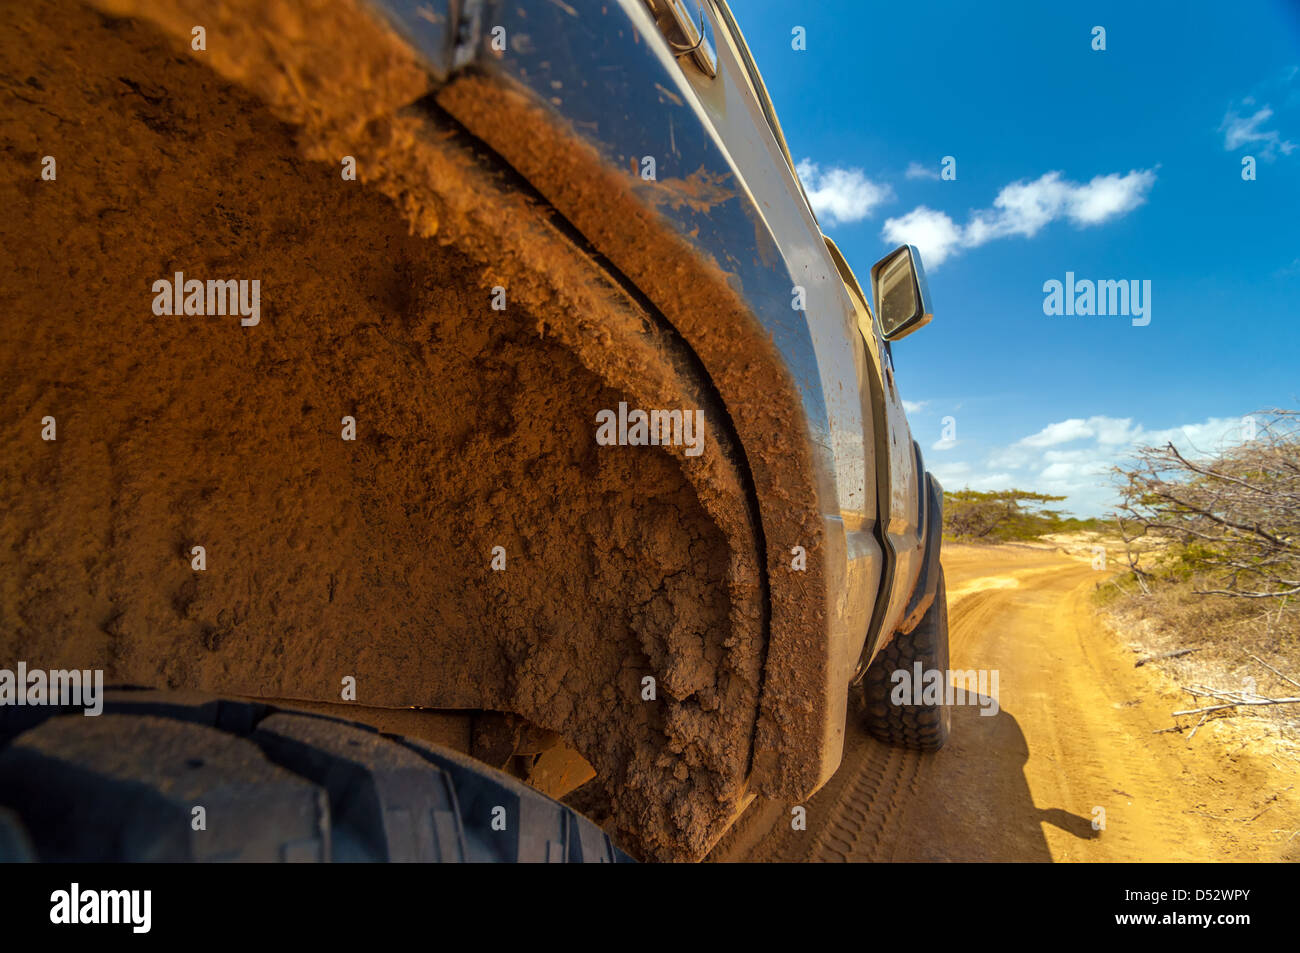 Muddy dirty wheel well on an SUV in a desert - Stock Image